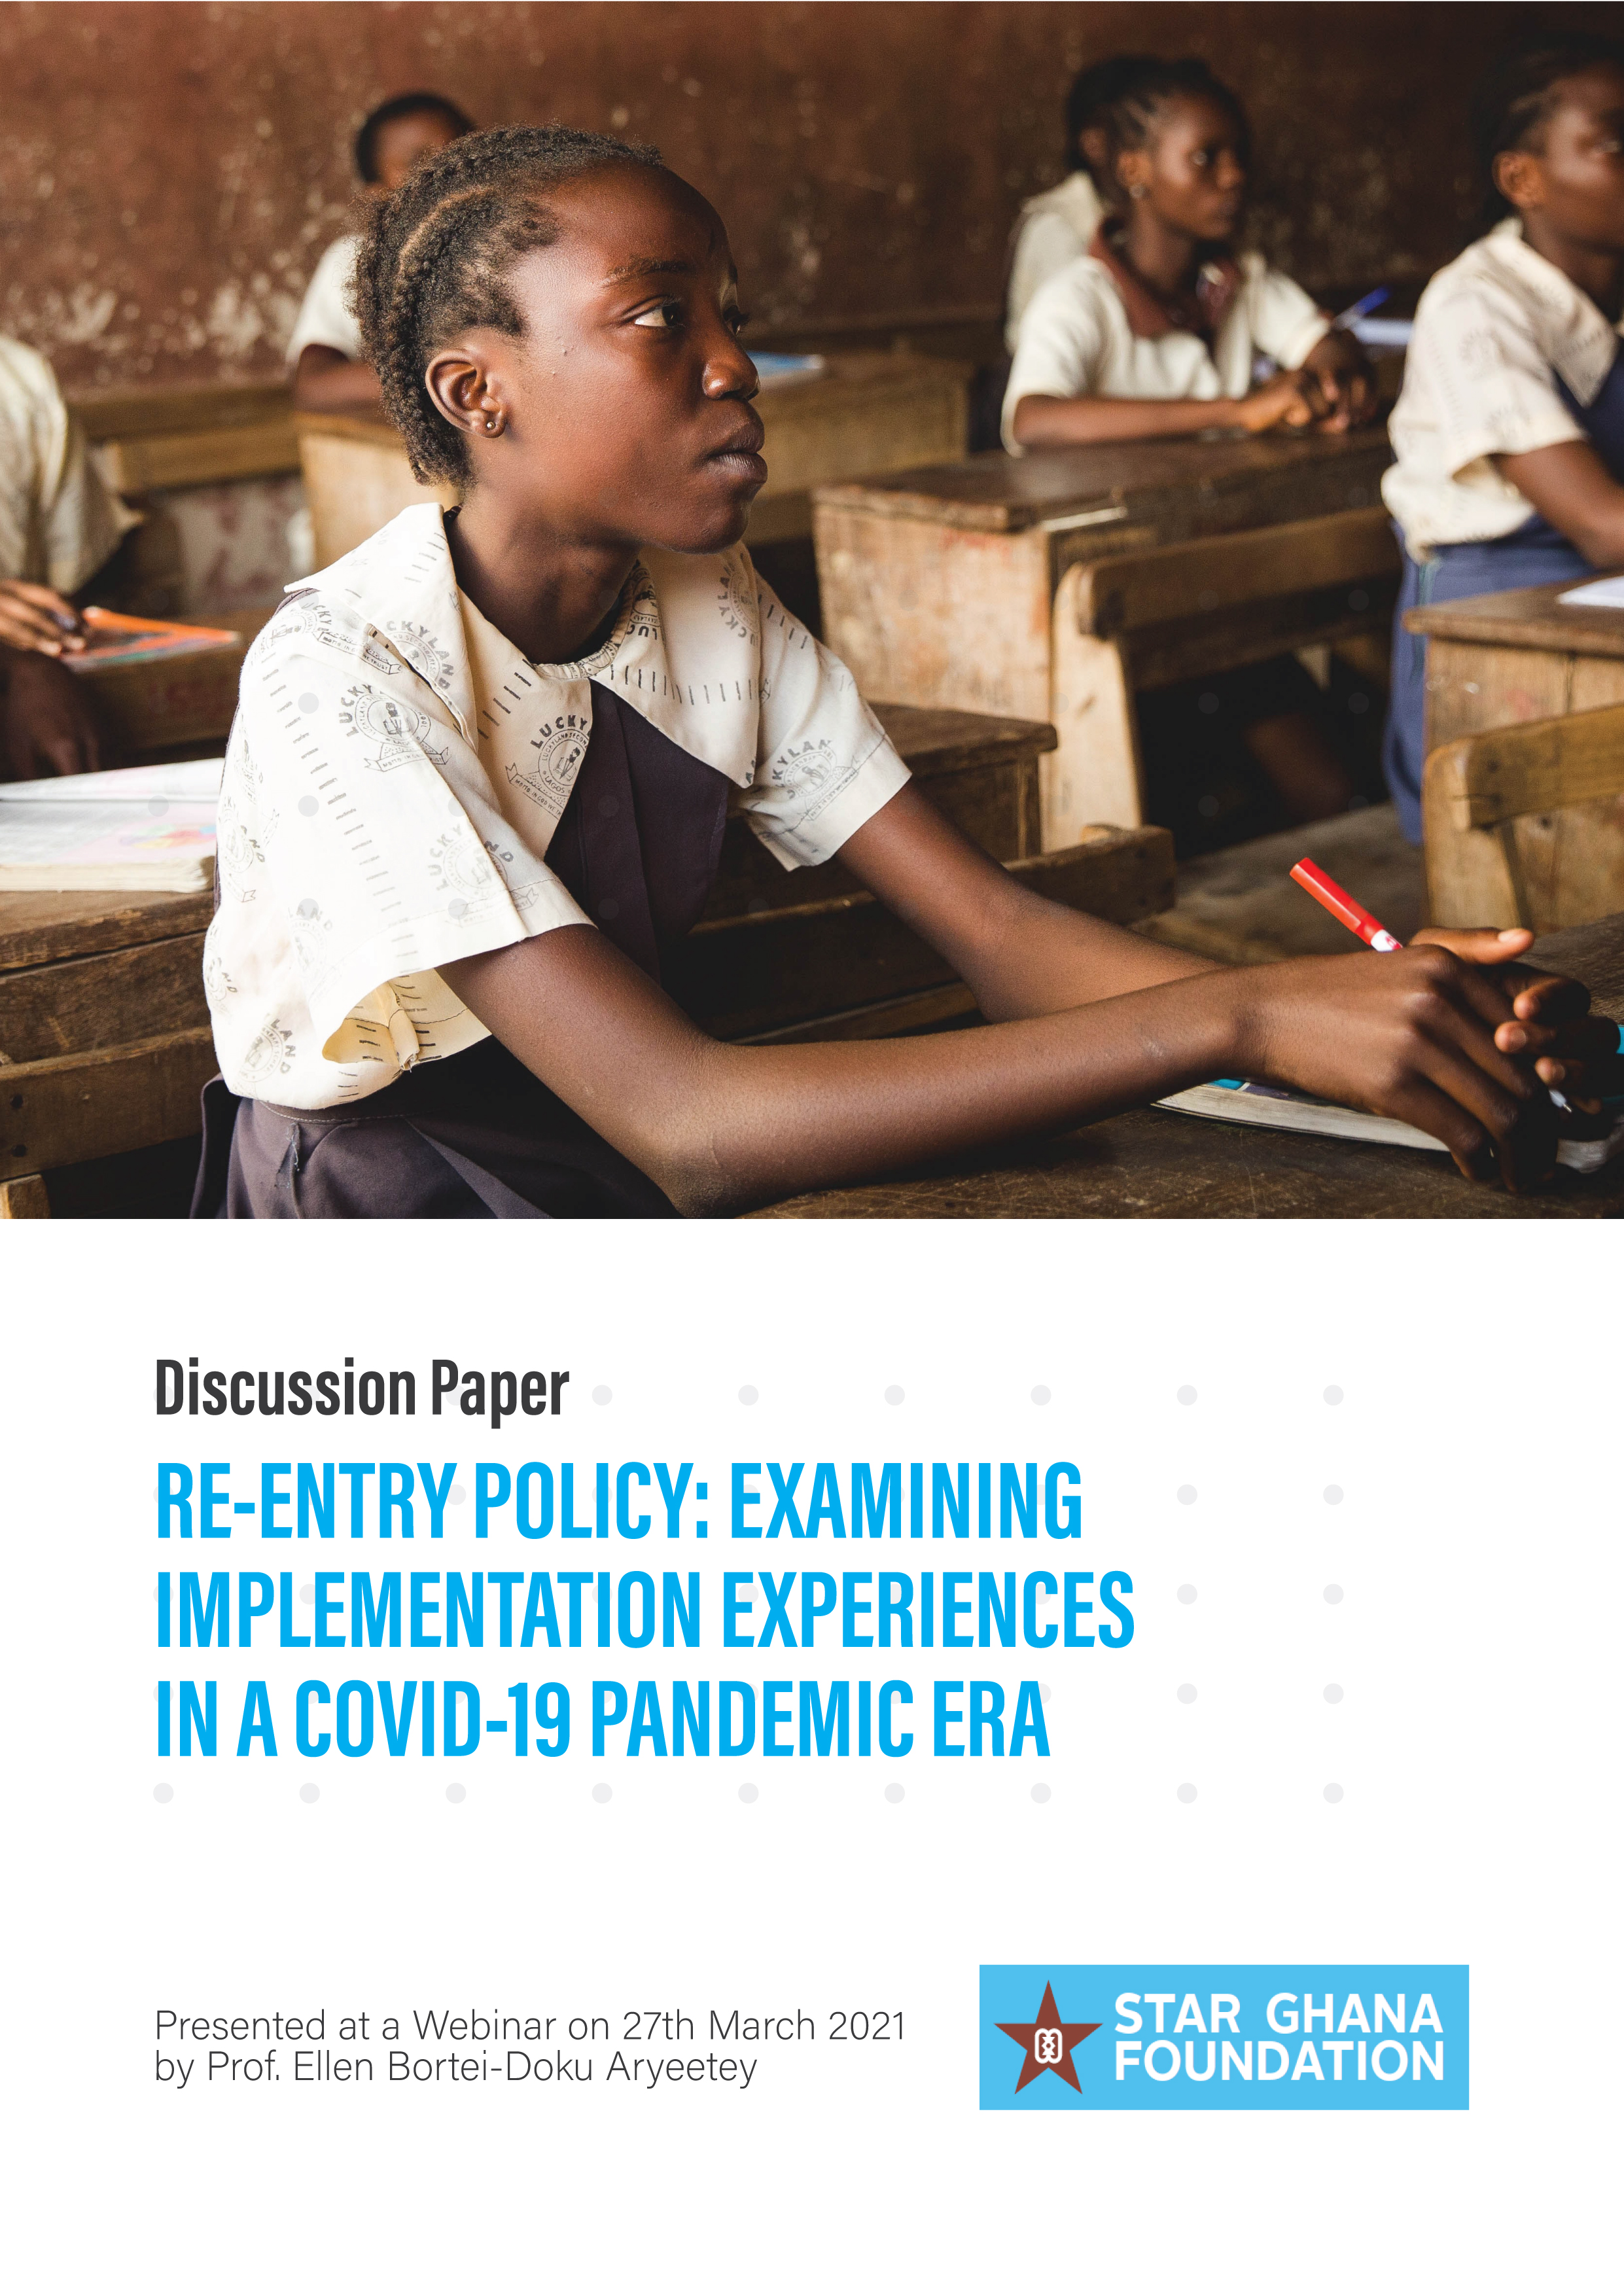 Re-entry Policy: Examining Implementation Experiences in a COVID-19 Pandemic Era